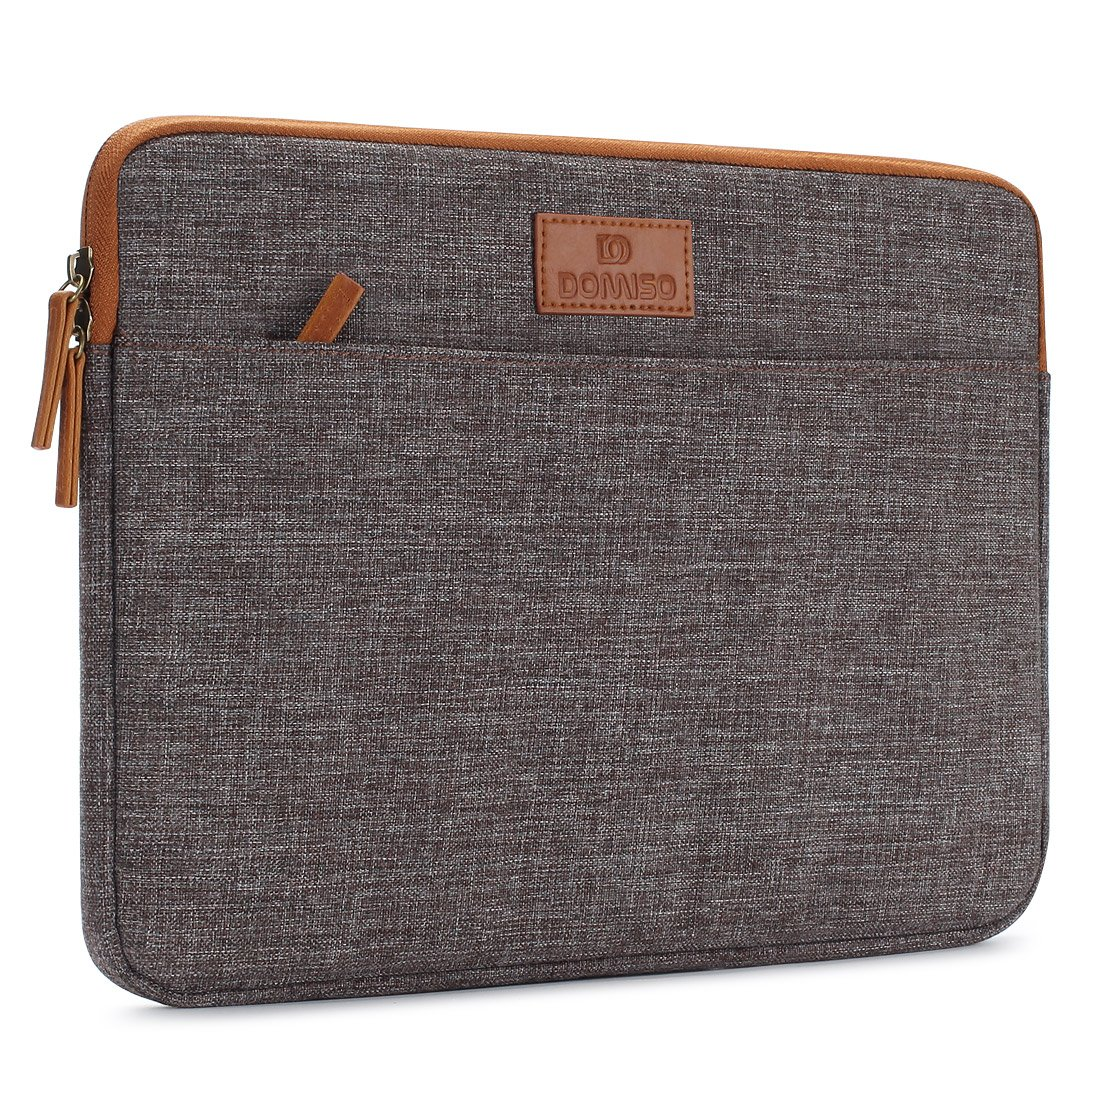 DOMISO 11 Inch Laptop Sleeve Canvas Case Tablet Bag Protect Computer Pouch Skin Cover for 11.6'' MacBook Air / 12.3'' Microsoft Surface Pro 4 , Brown